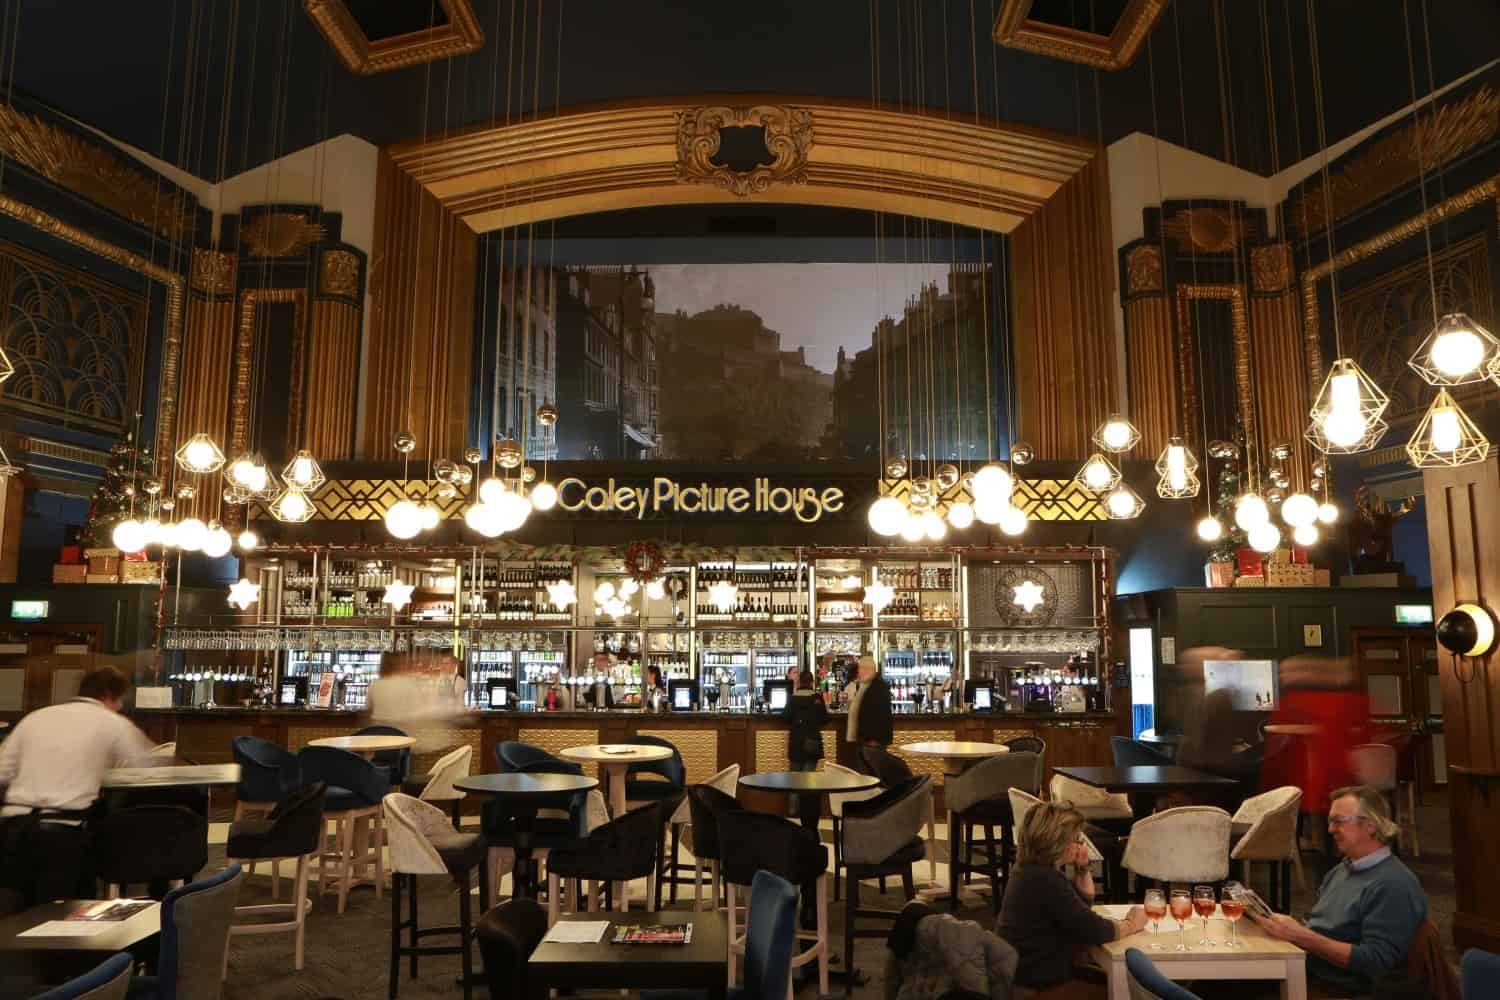 WETHERSPOON CALEY PICTURE HOUSE EDINBURGH 1